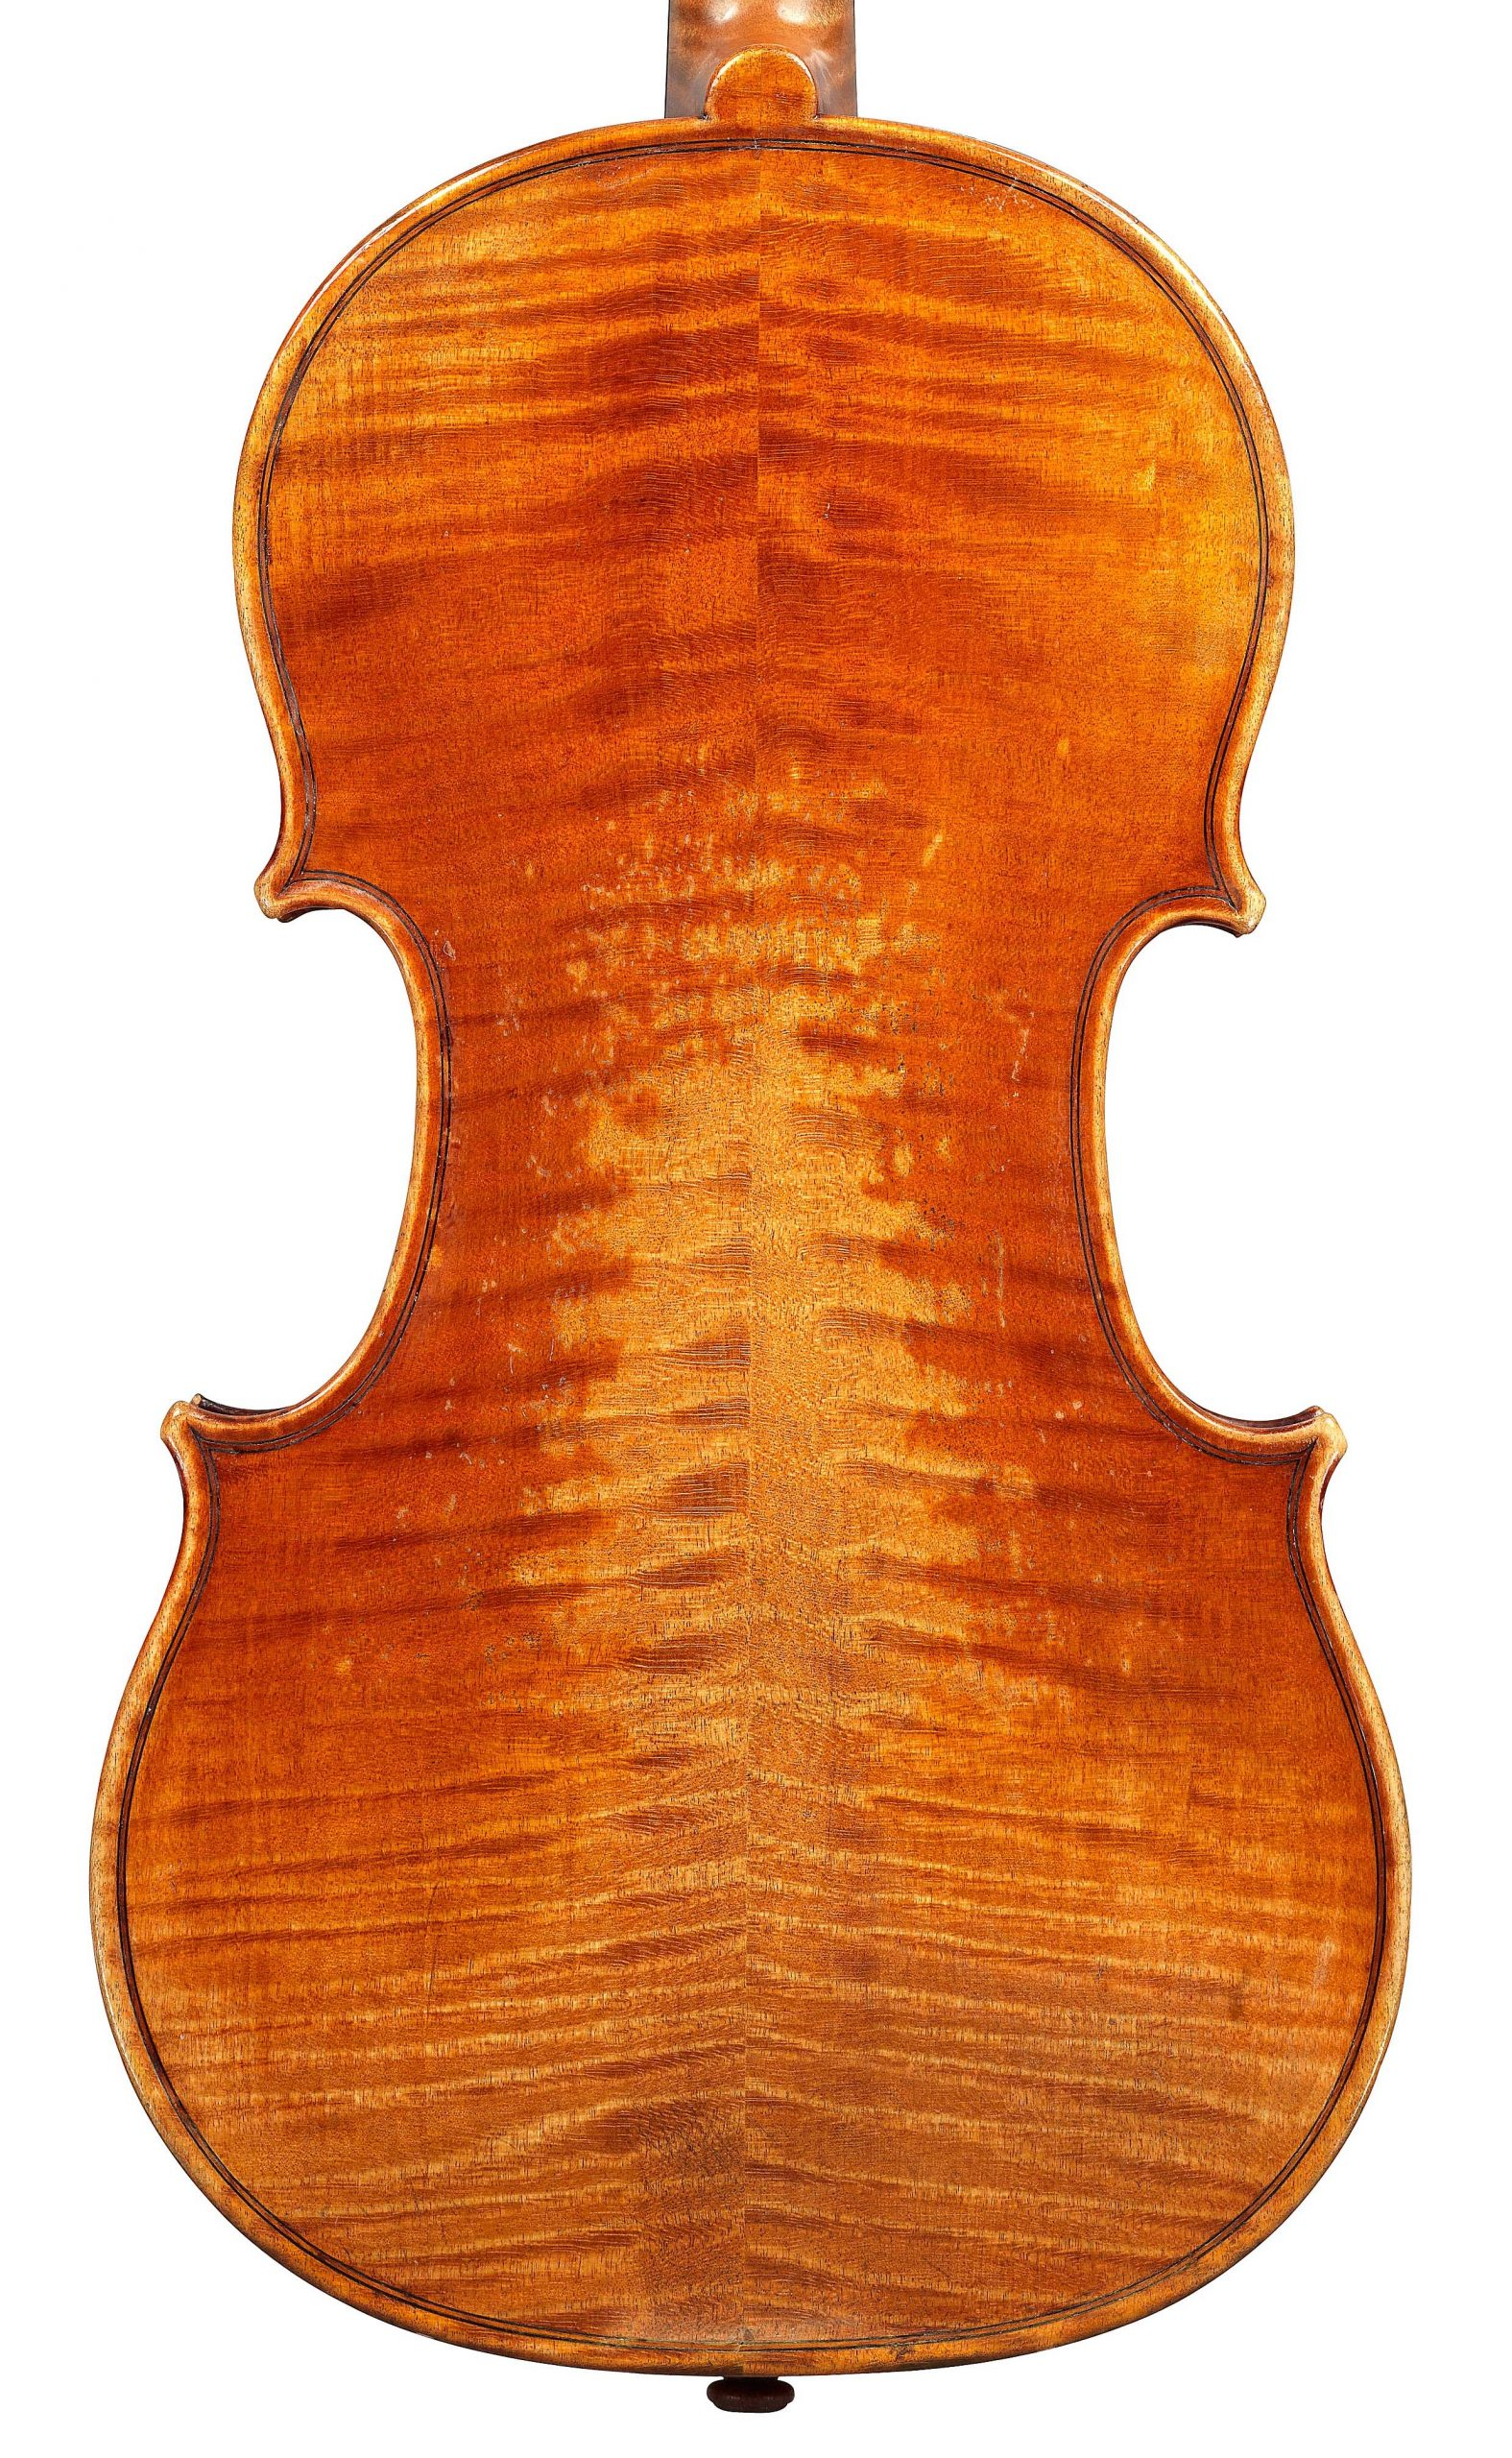 Violin by JB Vuillaume, dated 1859, ex-Karrman, exhibited by Ingles & Hayday at Sotheby's in 2012